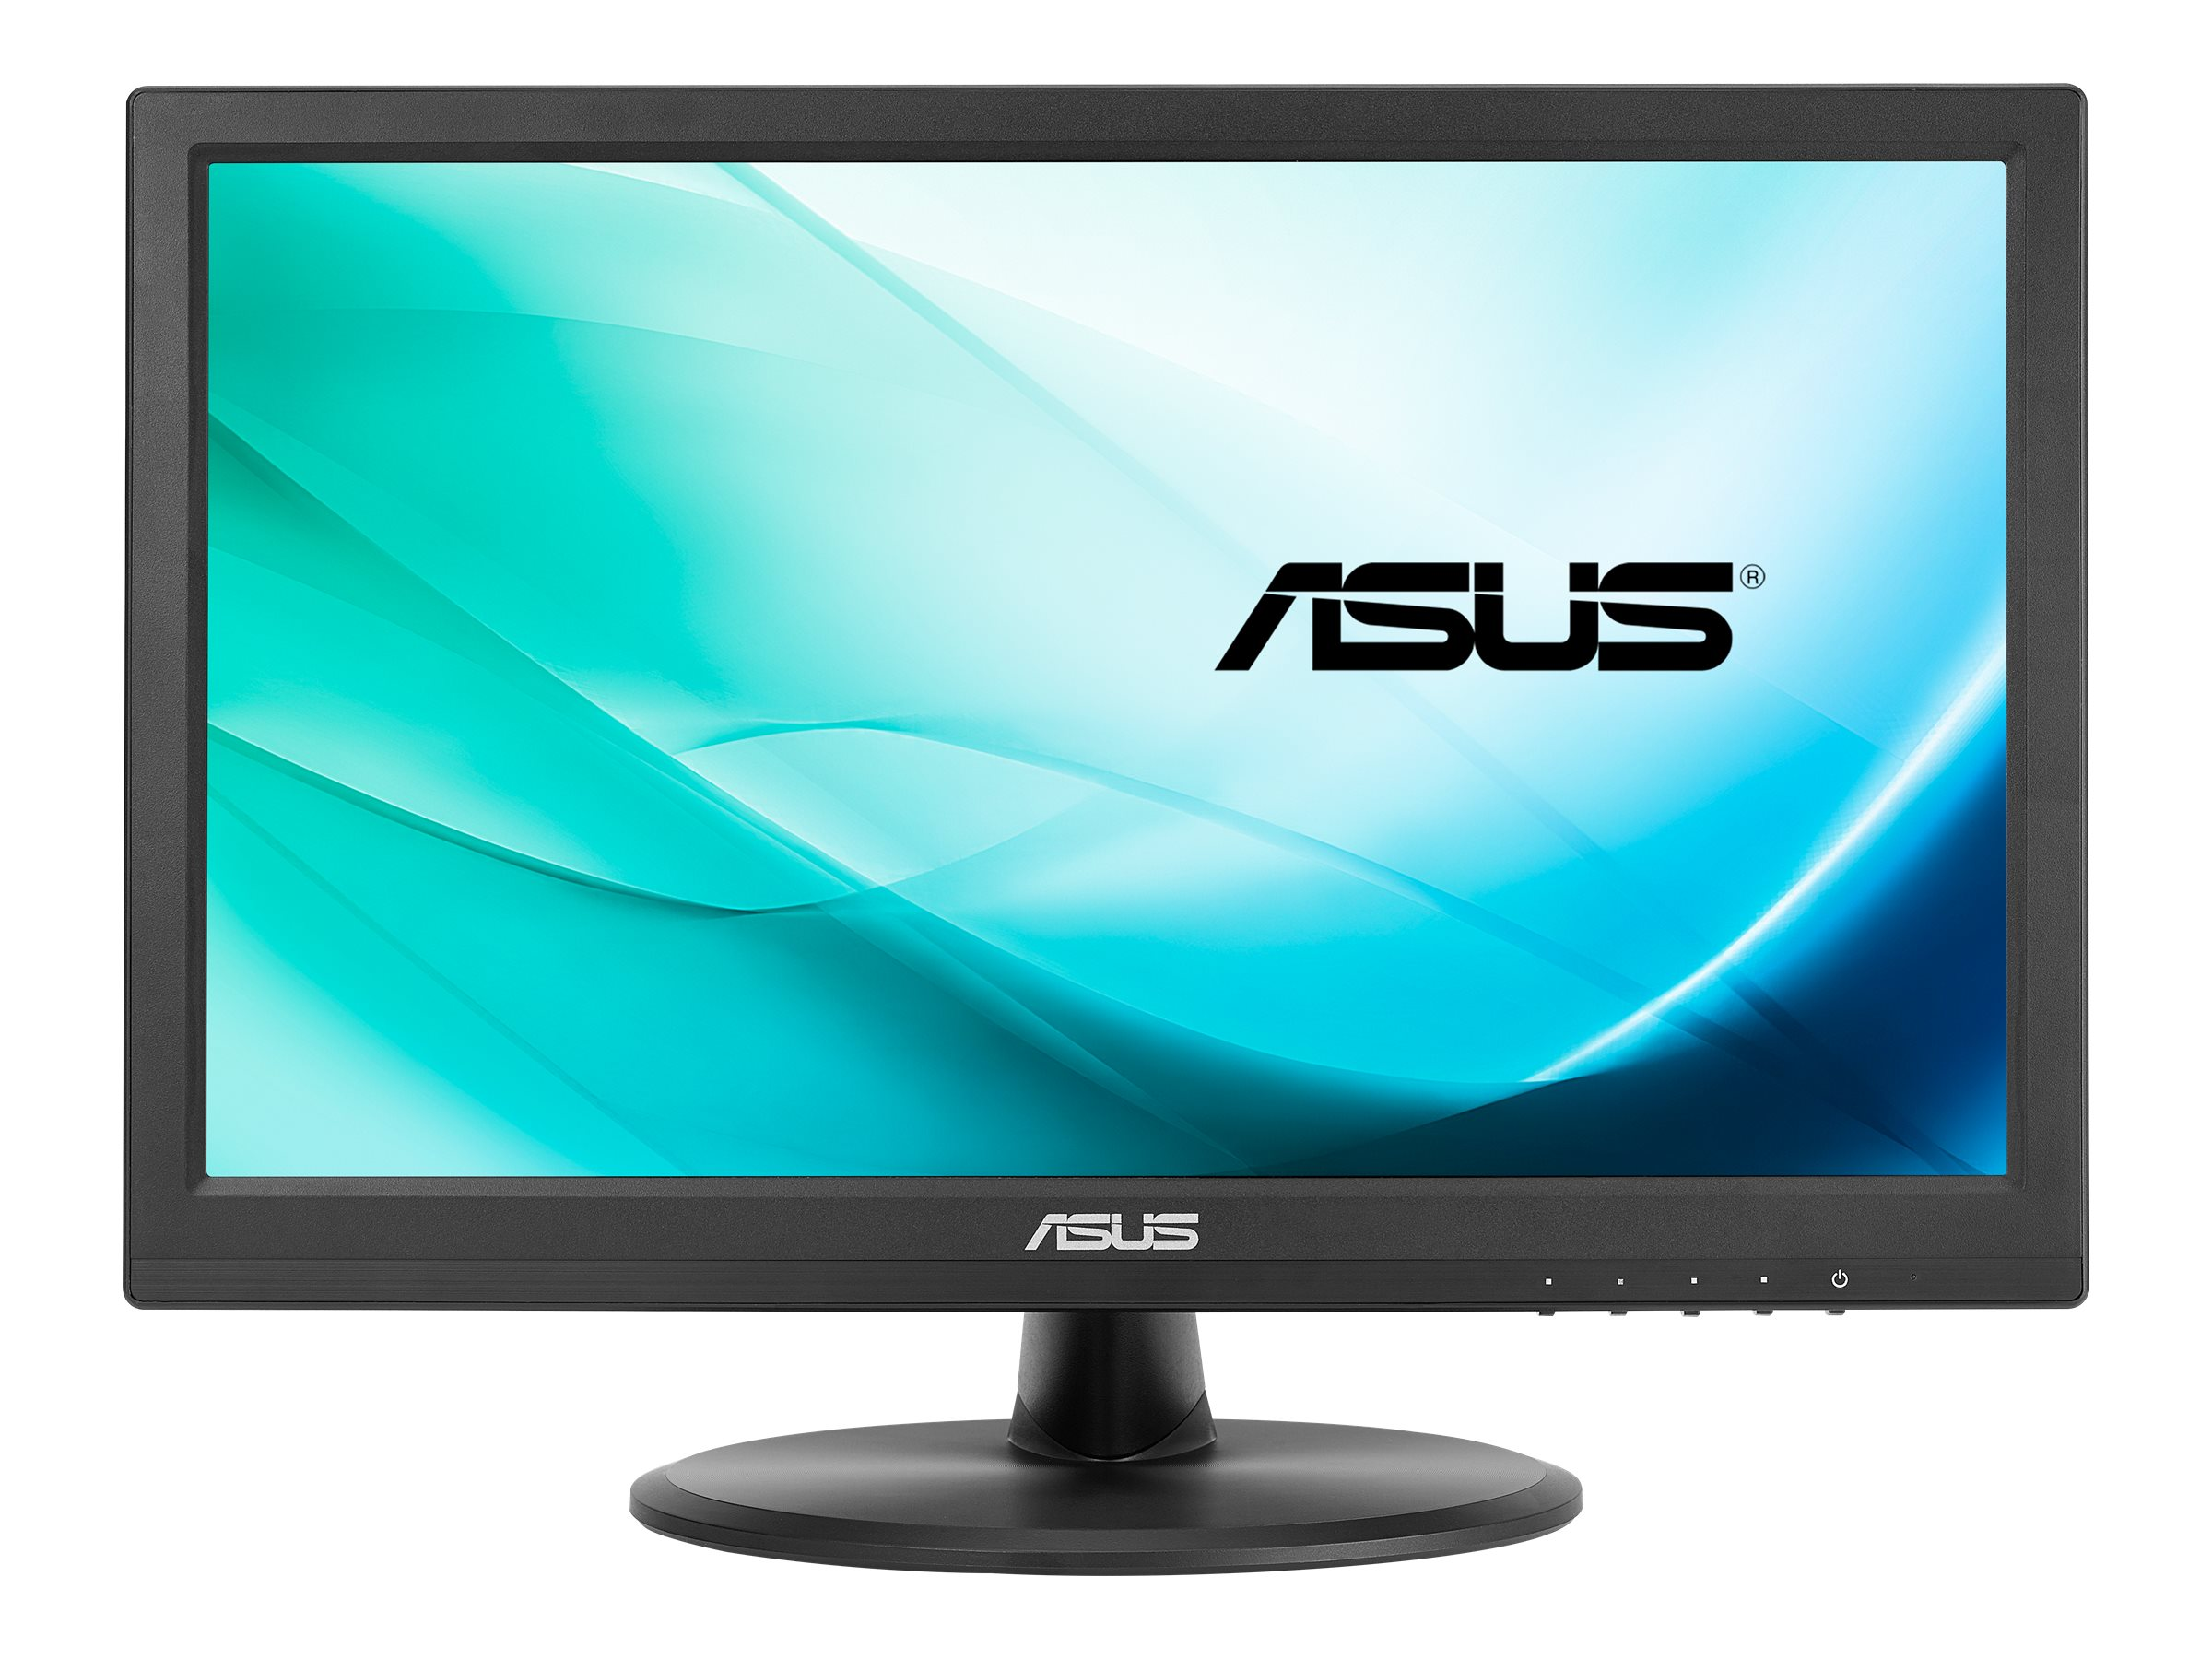 "Image for Asus - Led Monitor - 15.6"" from Circuit City"